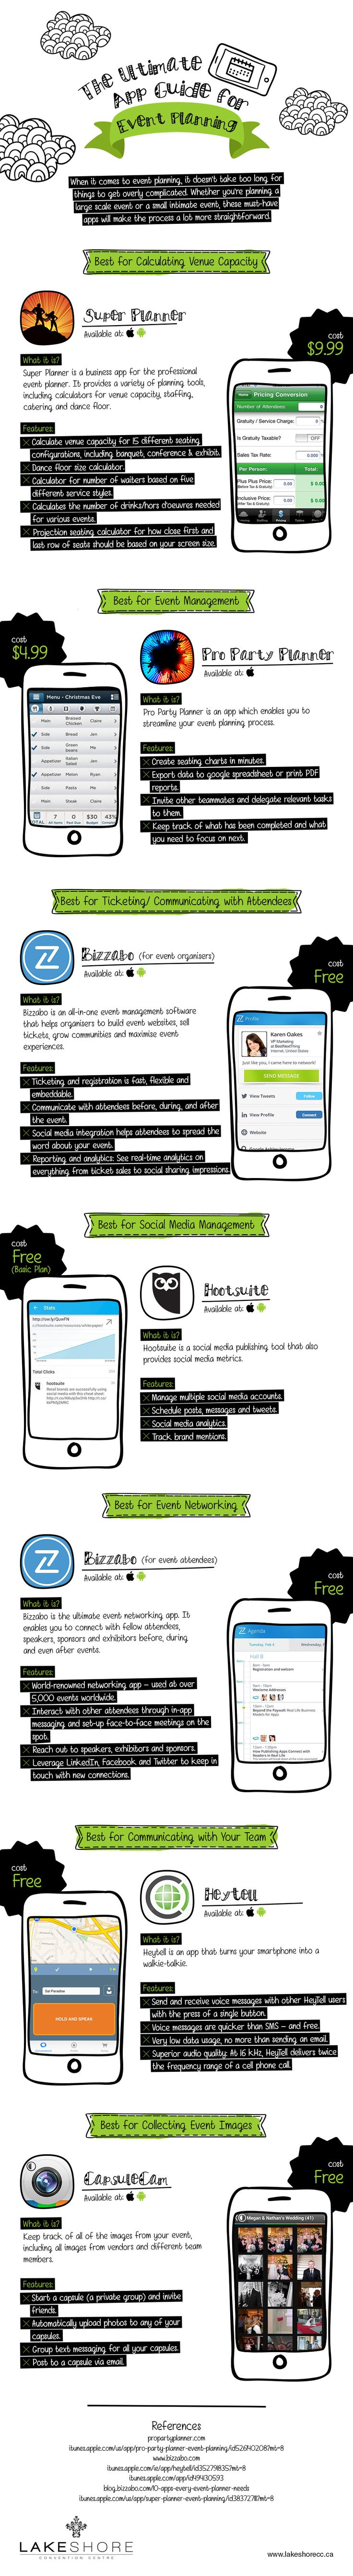 The Ultimate App Guide for Event Planning Infographic